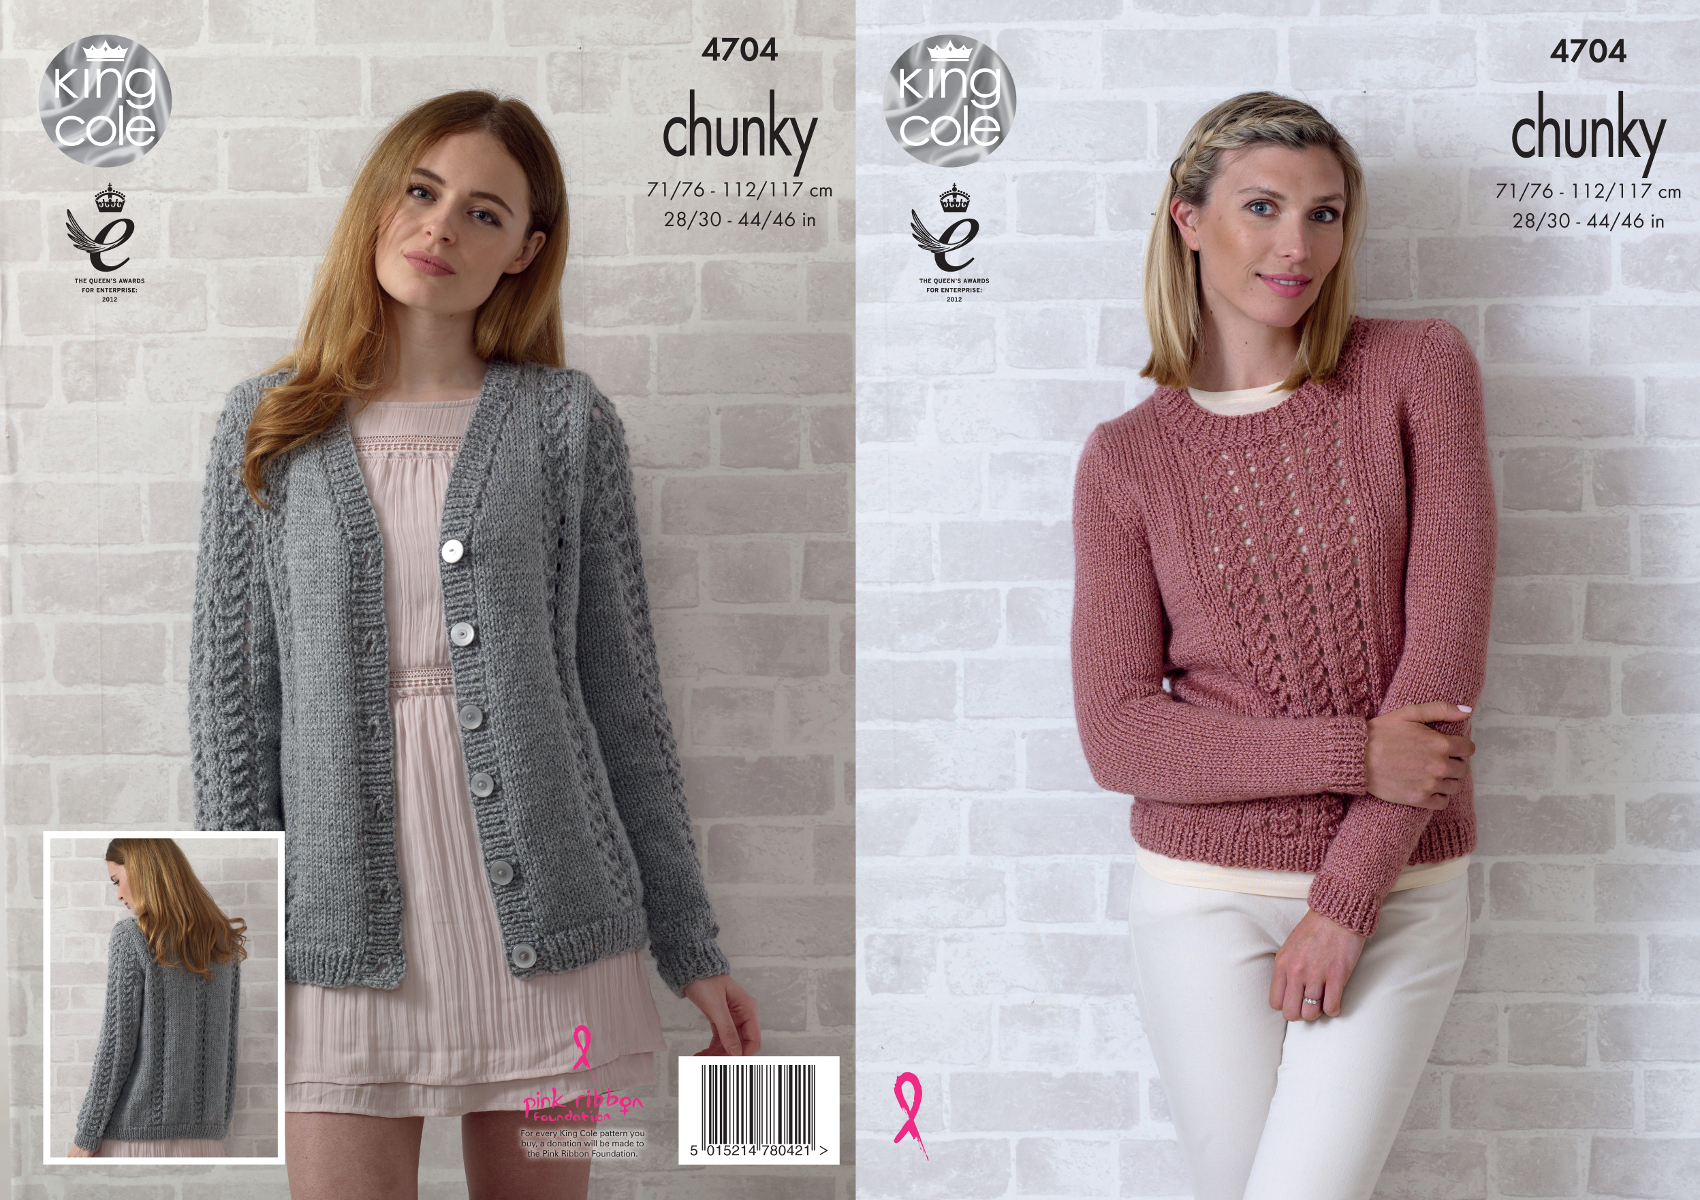 King cole womens chunky knitting pattern ladies lacy cardigan please look at images below for the chart showing measurements yarn and materials requirement to make this garment bankloansurffo Image collections